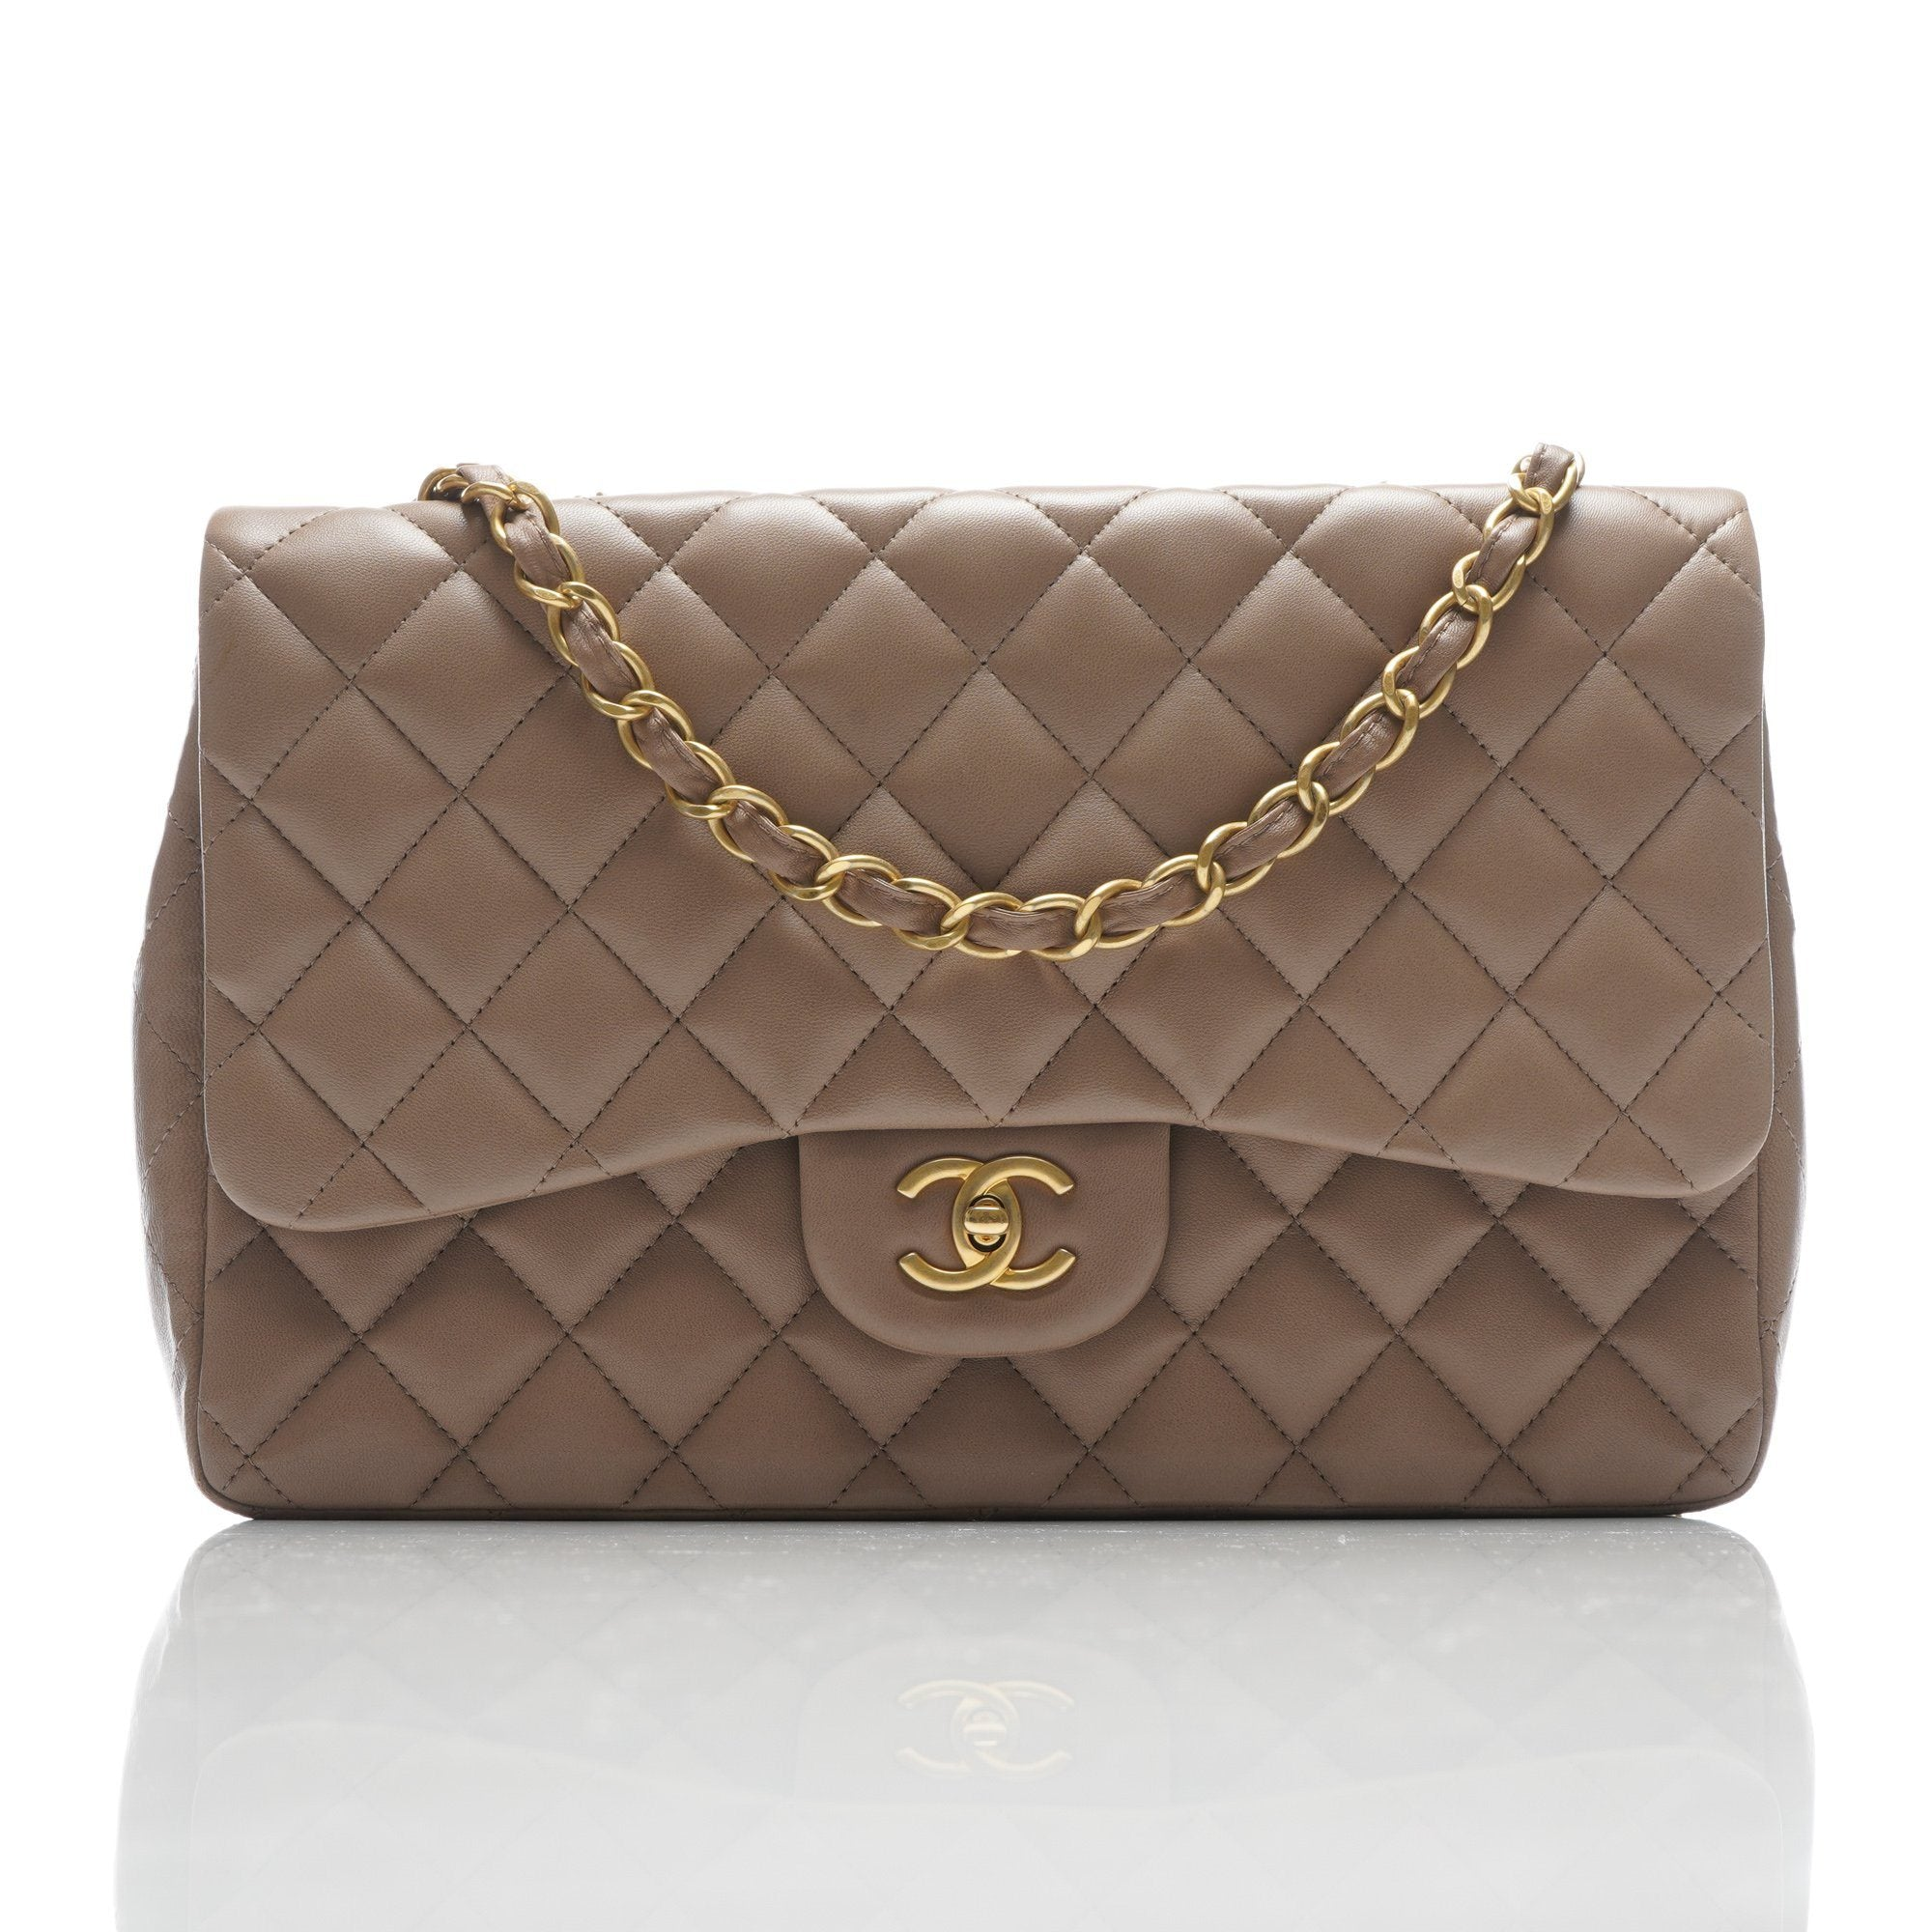 651aba35b4c8 Chanel Taupe Quilted Leather Jumbo Classic Flap Bag – Garderobe